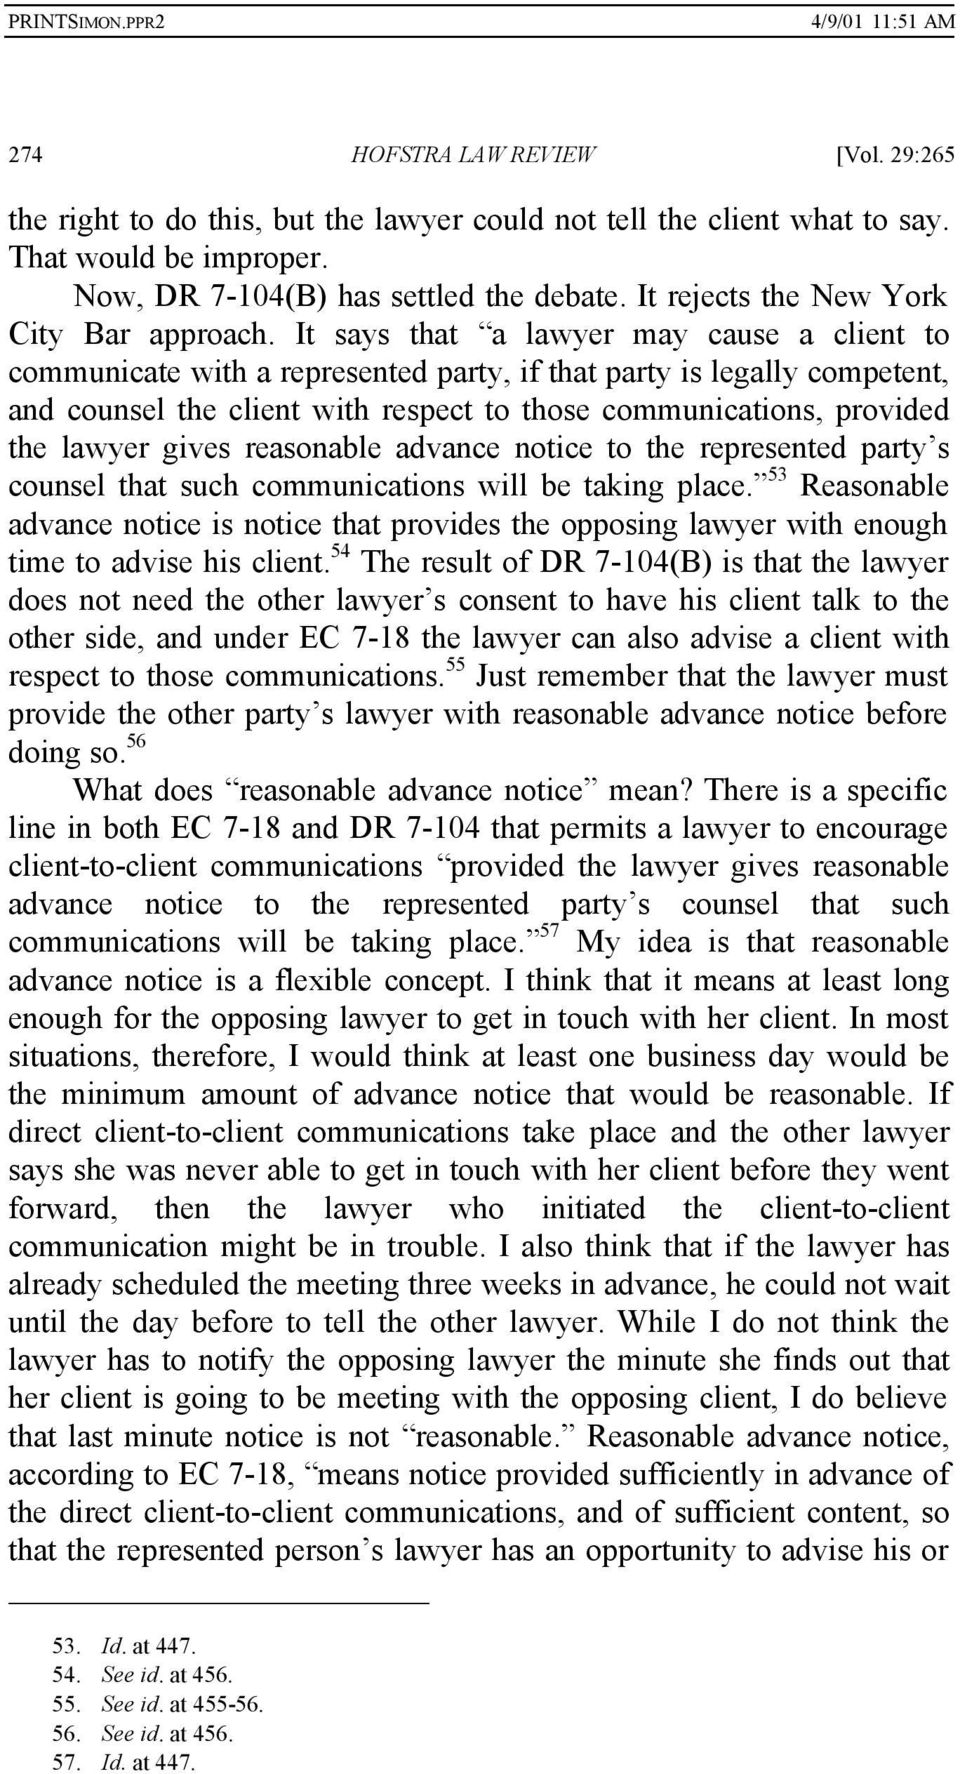 It says that a lawyer may cause a client to communicate with a represented party, if that party is legally competent, and counsel the client with respect to those communications, provided the lawyer